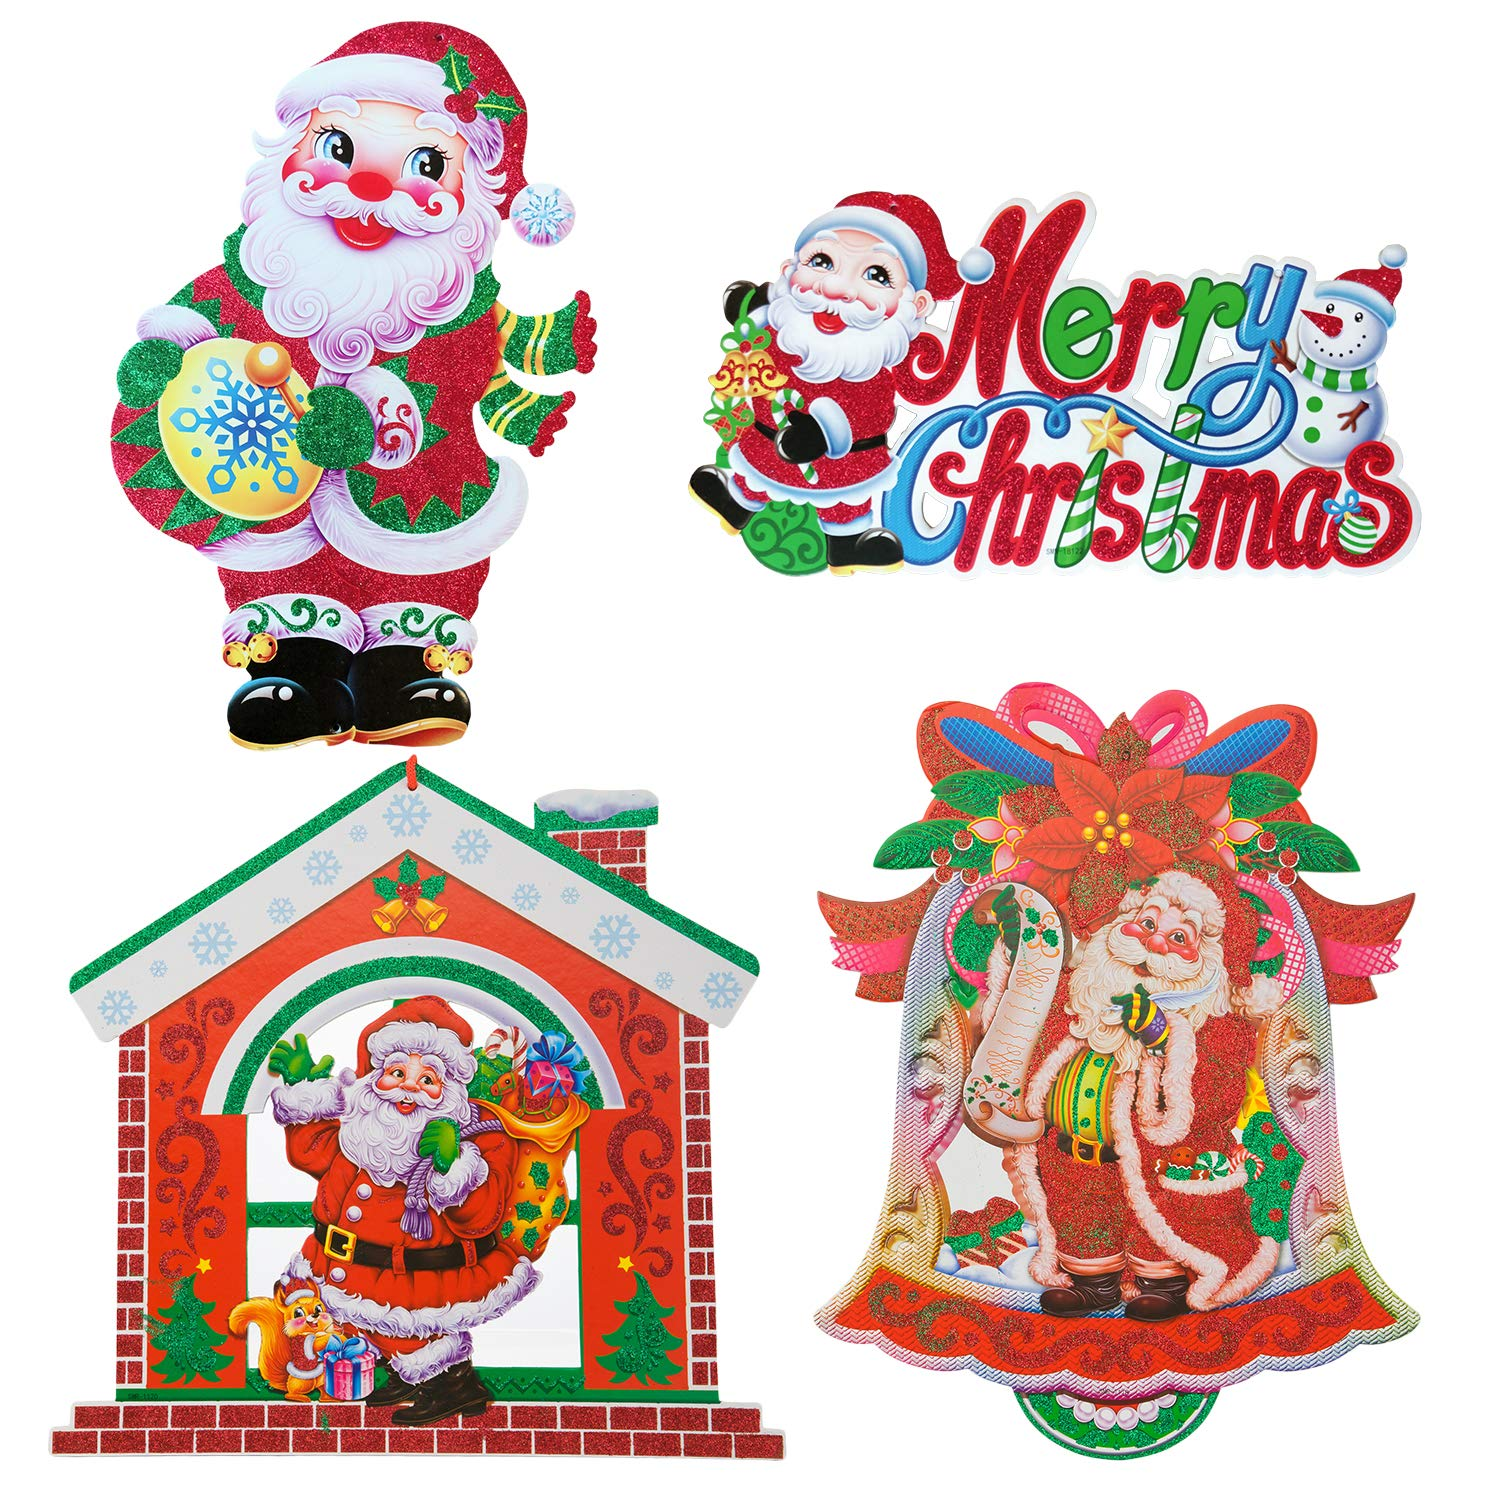 4pcs Christmas Door Decorations Hanging Sparkling Santa Claus Snowman Cardbord Decor for Holiday Party Indoor Outdoor Fireplace Home Yard Favor Gift (C)